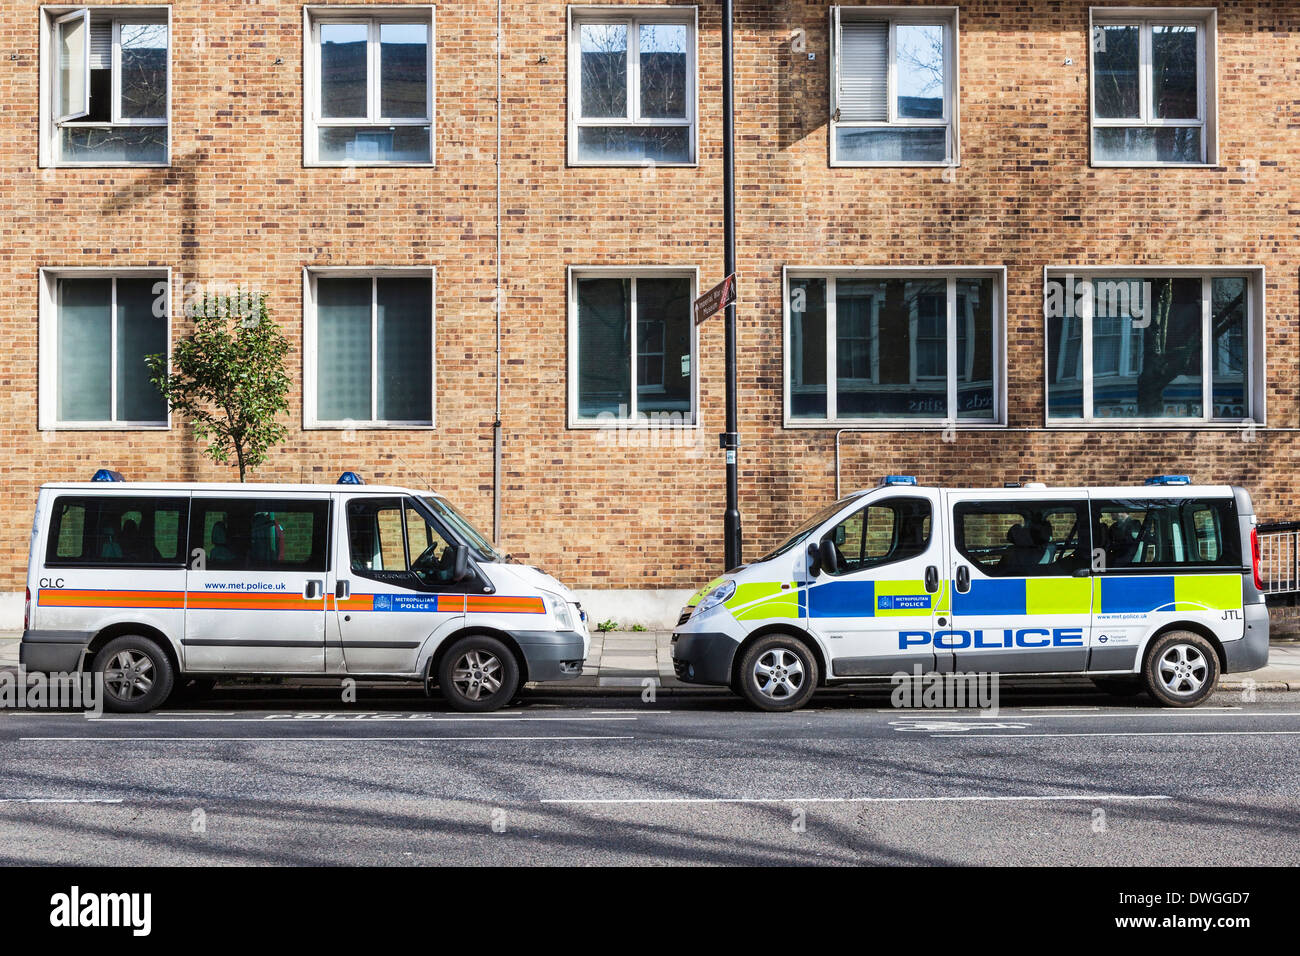 Two Metropolitan Police cars parked in Kennington road, Southwark, South London, SE1 - Stock Image